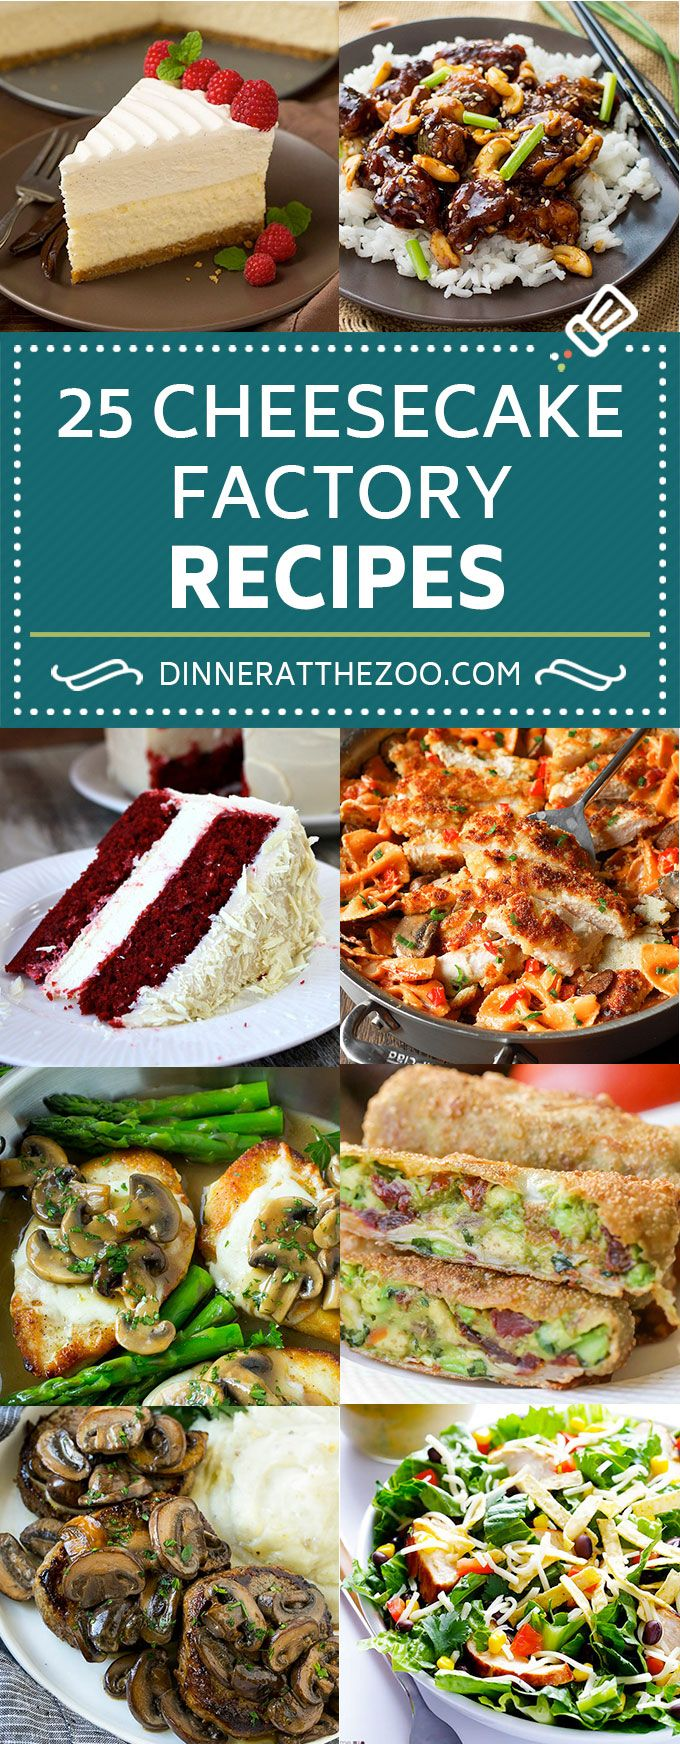 25 Cheesecake Factory Recipes | Cheesecake Factory Copycat Recipes | Restaurant Copycat Recipes #cheesecake #dinneratthezoo #dinner #pasta #chicken #cheesecakefactoryrecipes